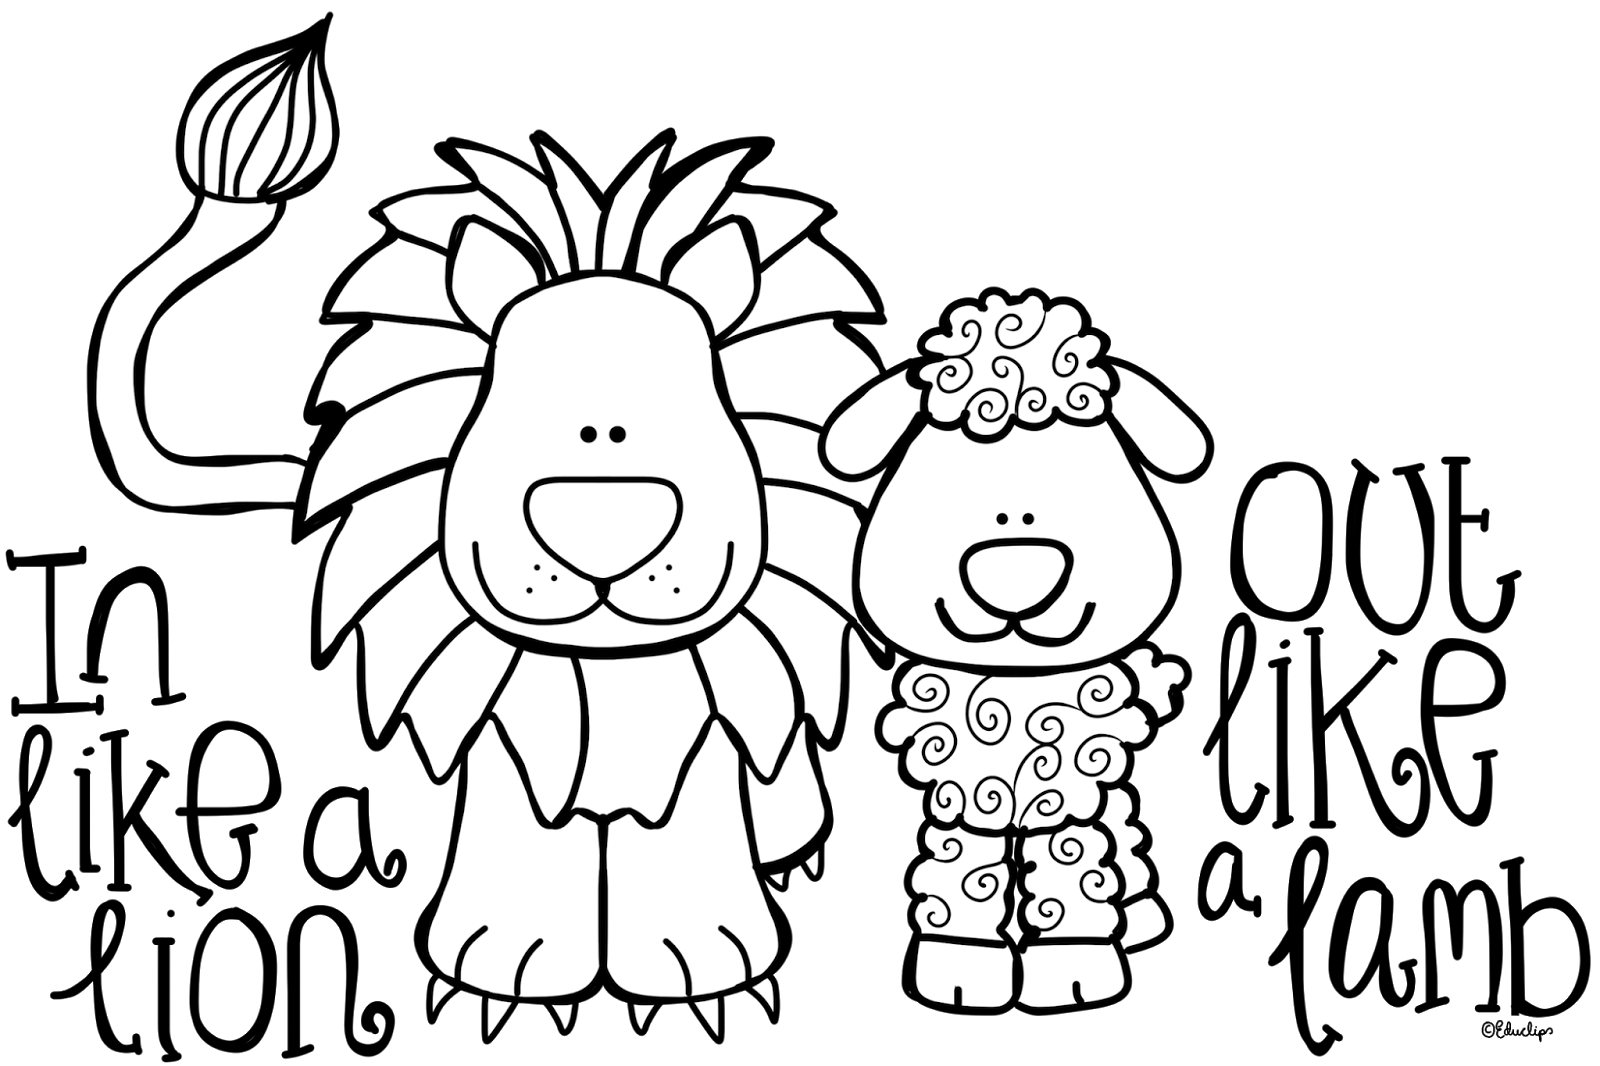 lion and lamb coloring page nice bible coloring pages lion and lamb that you must know lion page lamb coloring and